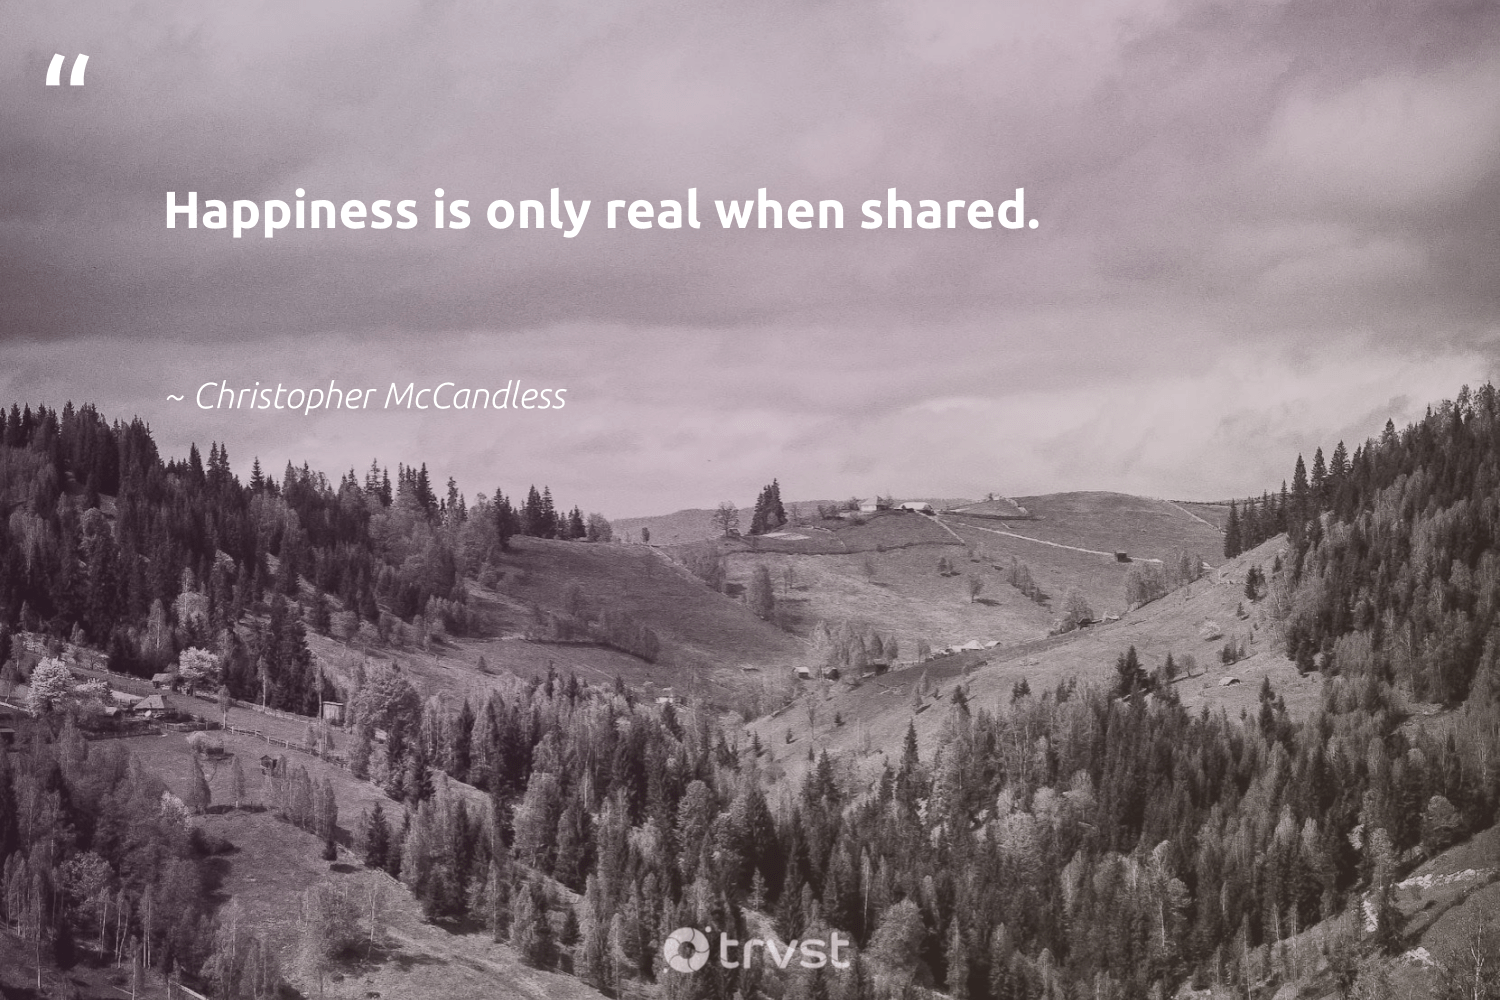 """""""Happiness is only real when shared.""""  - Christopher McCandless #trvst #quotes #happiness #changemakers #planetearthfirst #begreat #dotherightthing #togetherwecan #thinkgreen #health #takeaction #nevergiveup"""